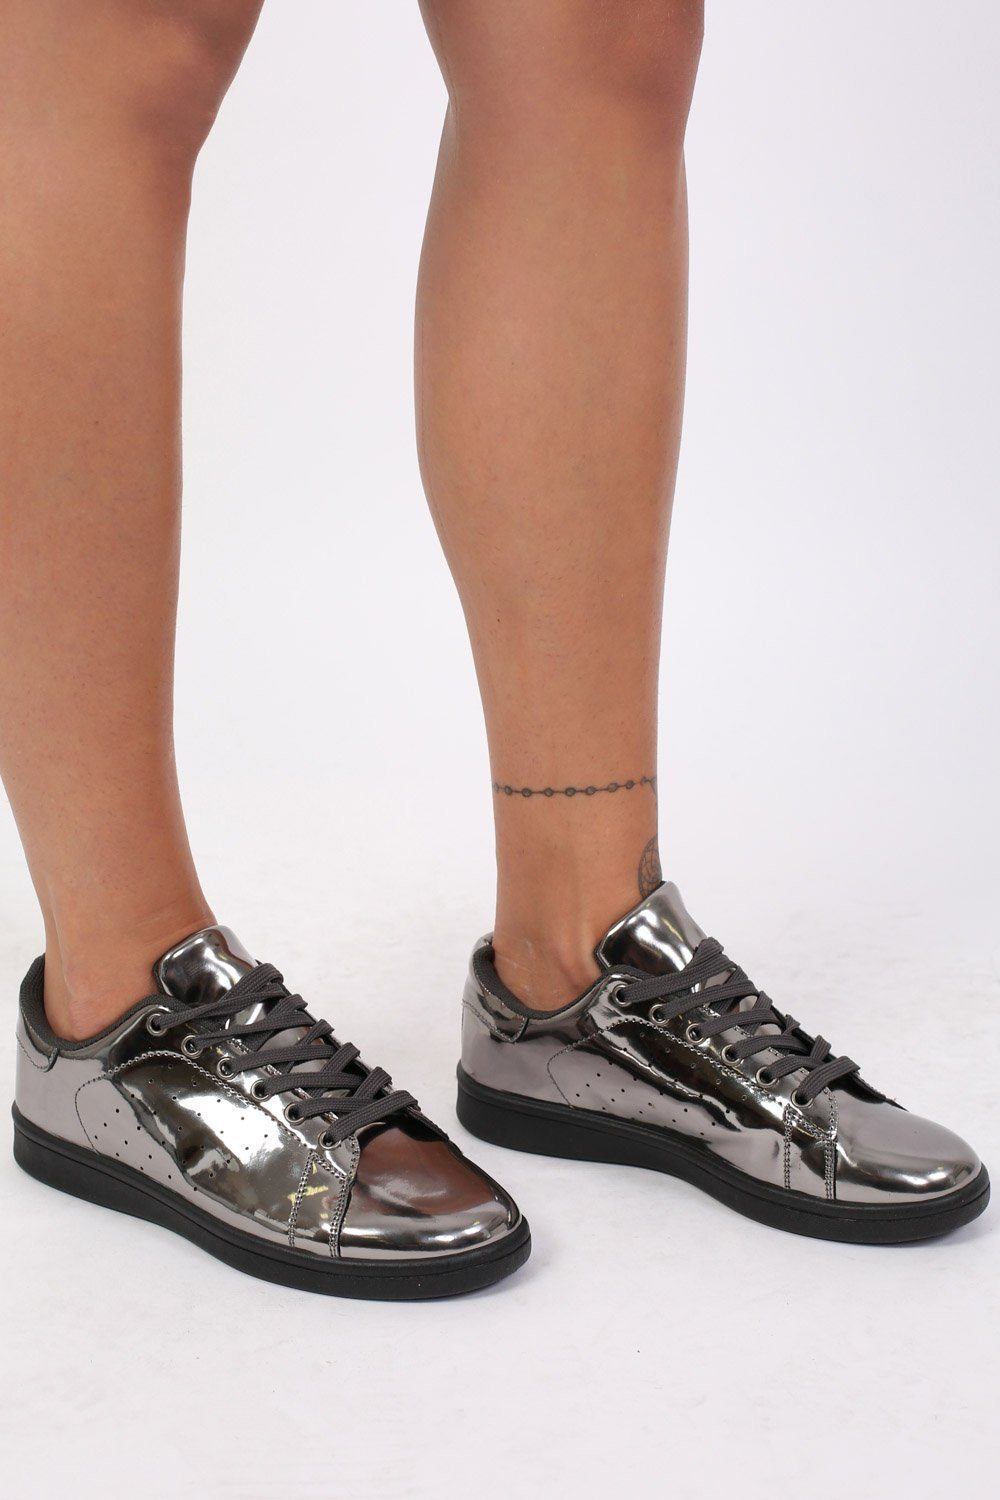 Plain Mirror Shine Trainer Pumps in Pewter 0